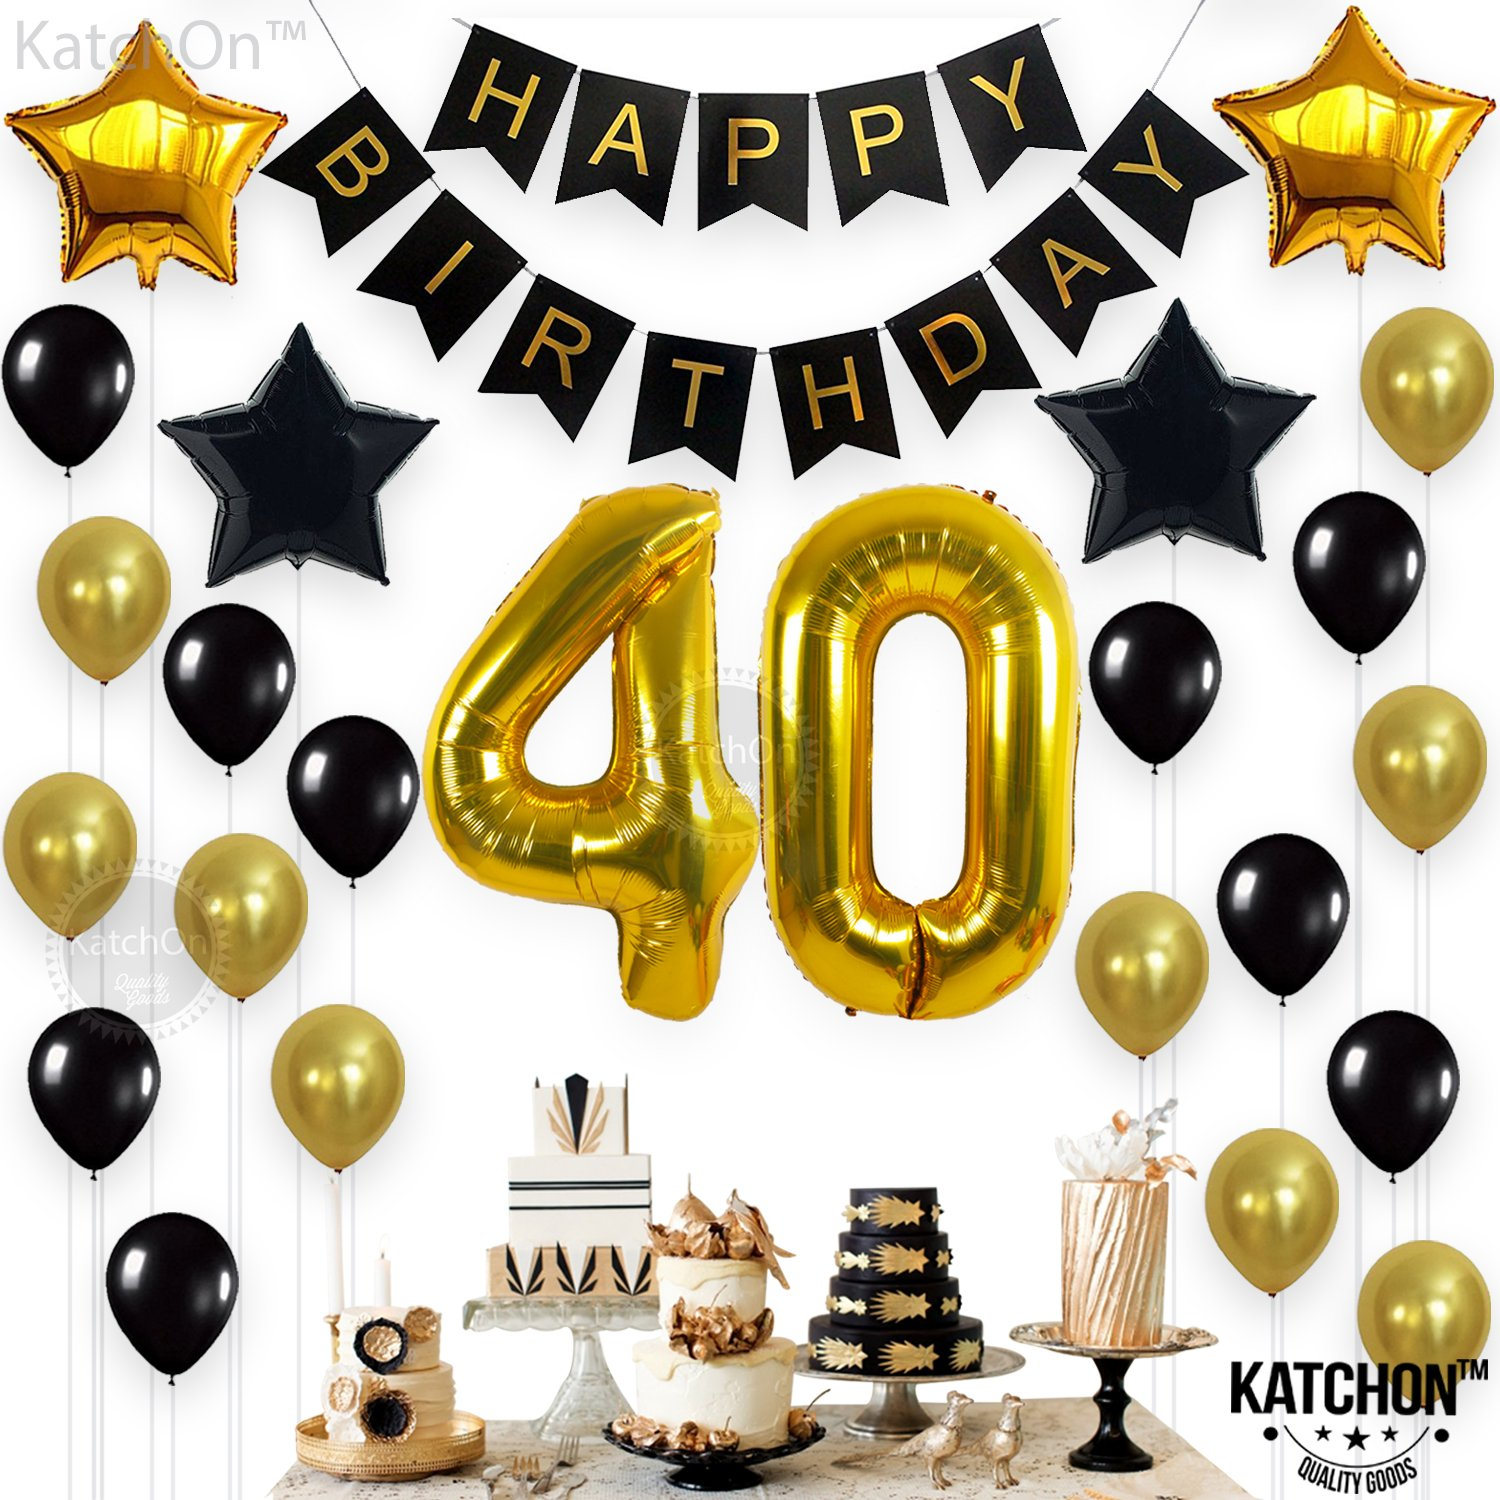 KATCHON 1 11 Decorations Happy Birthday Banner, 40th Balloons,Gold and Black, Number Perfect 40 Years Old Par, M by KATCHON (Image #2)